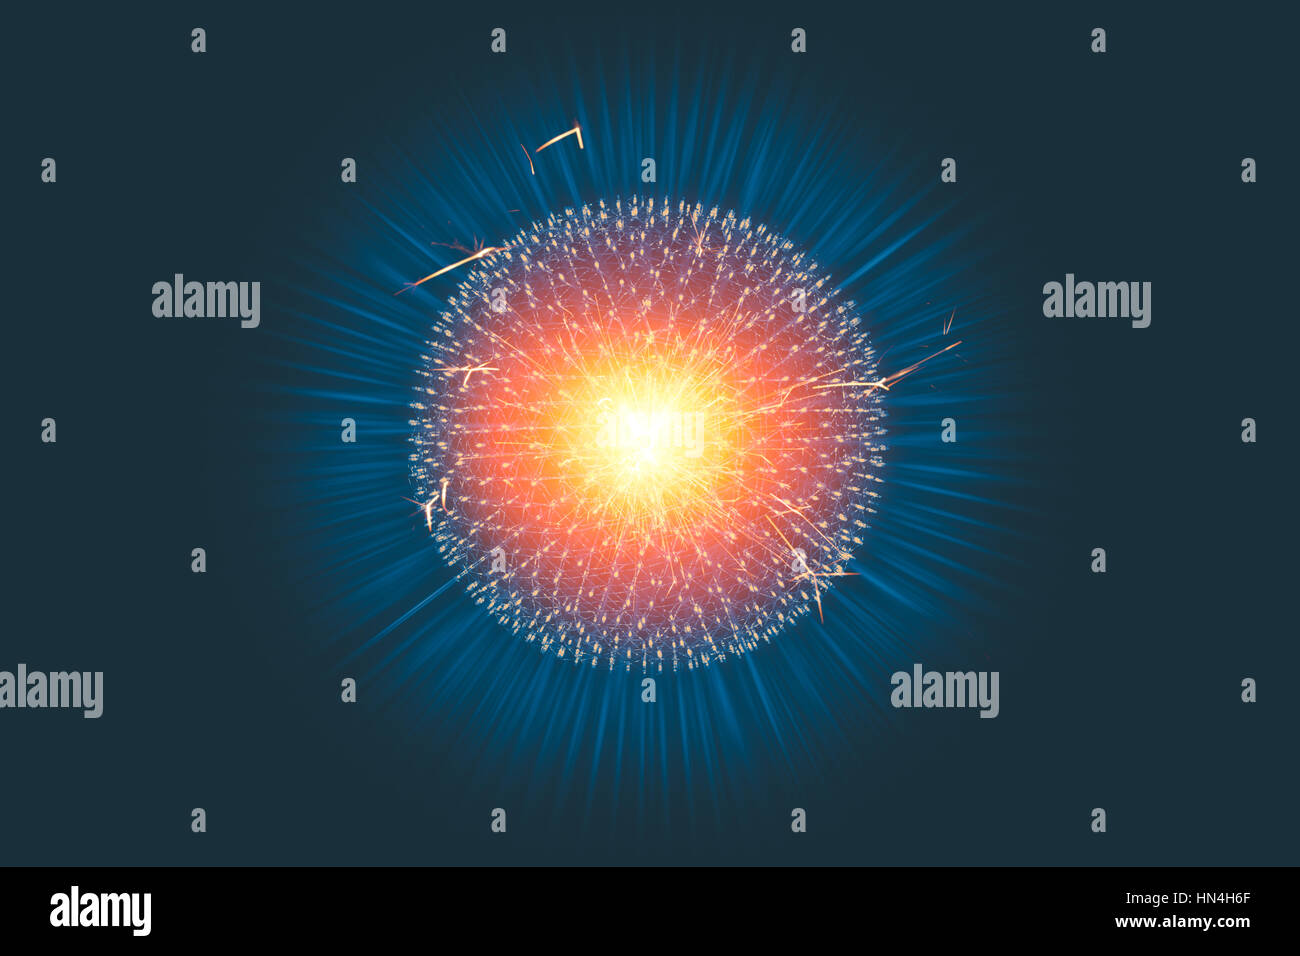 CG model structure form of Nucleus Atom Nuclear explode bomb emit x-ray radiation or light injection of magnetic - Stock Image